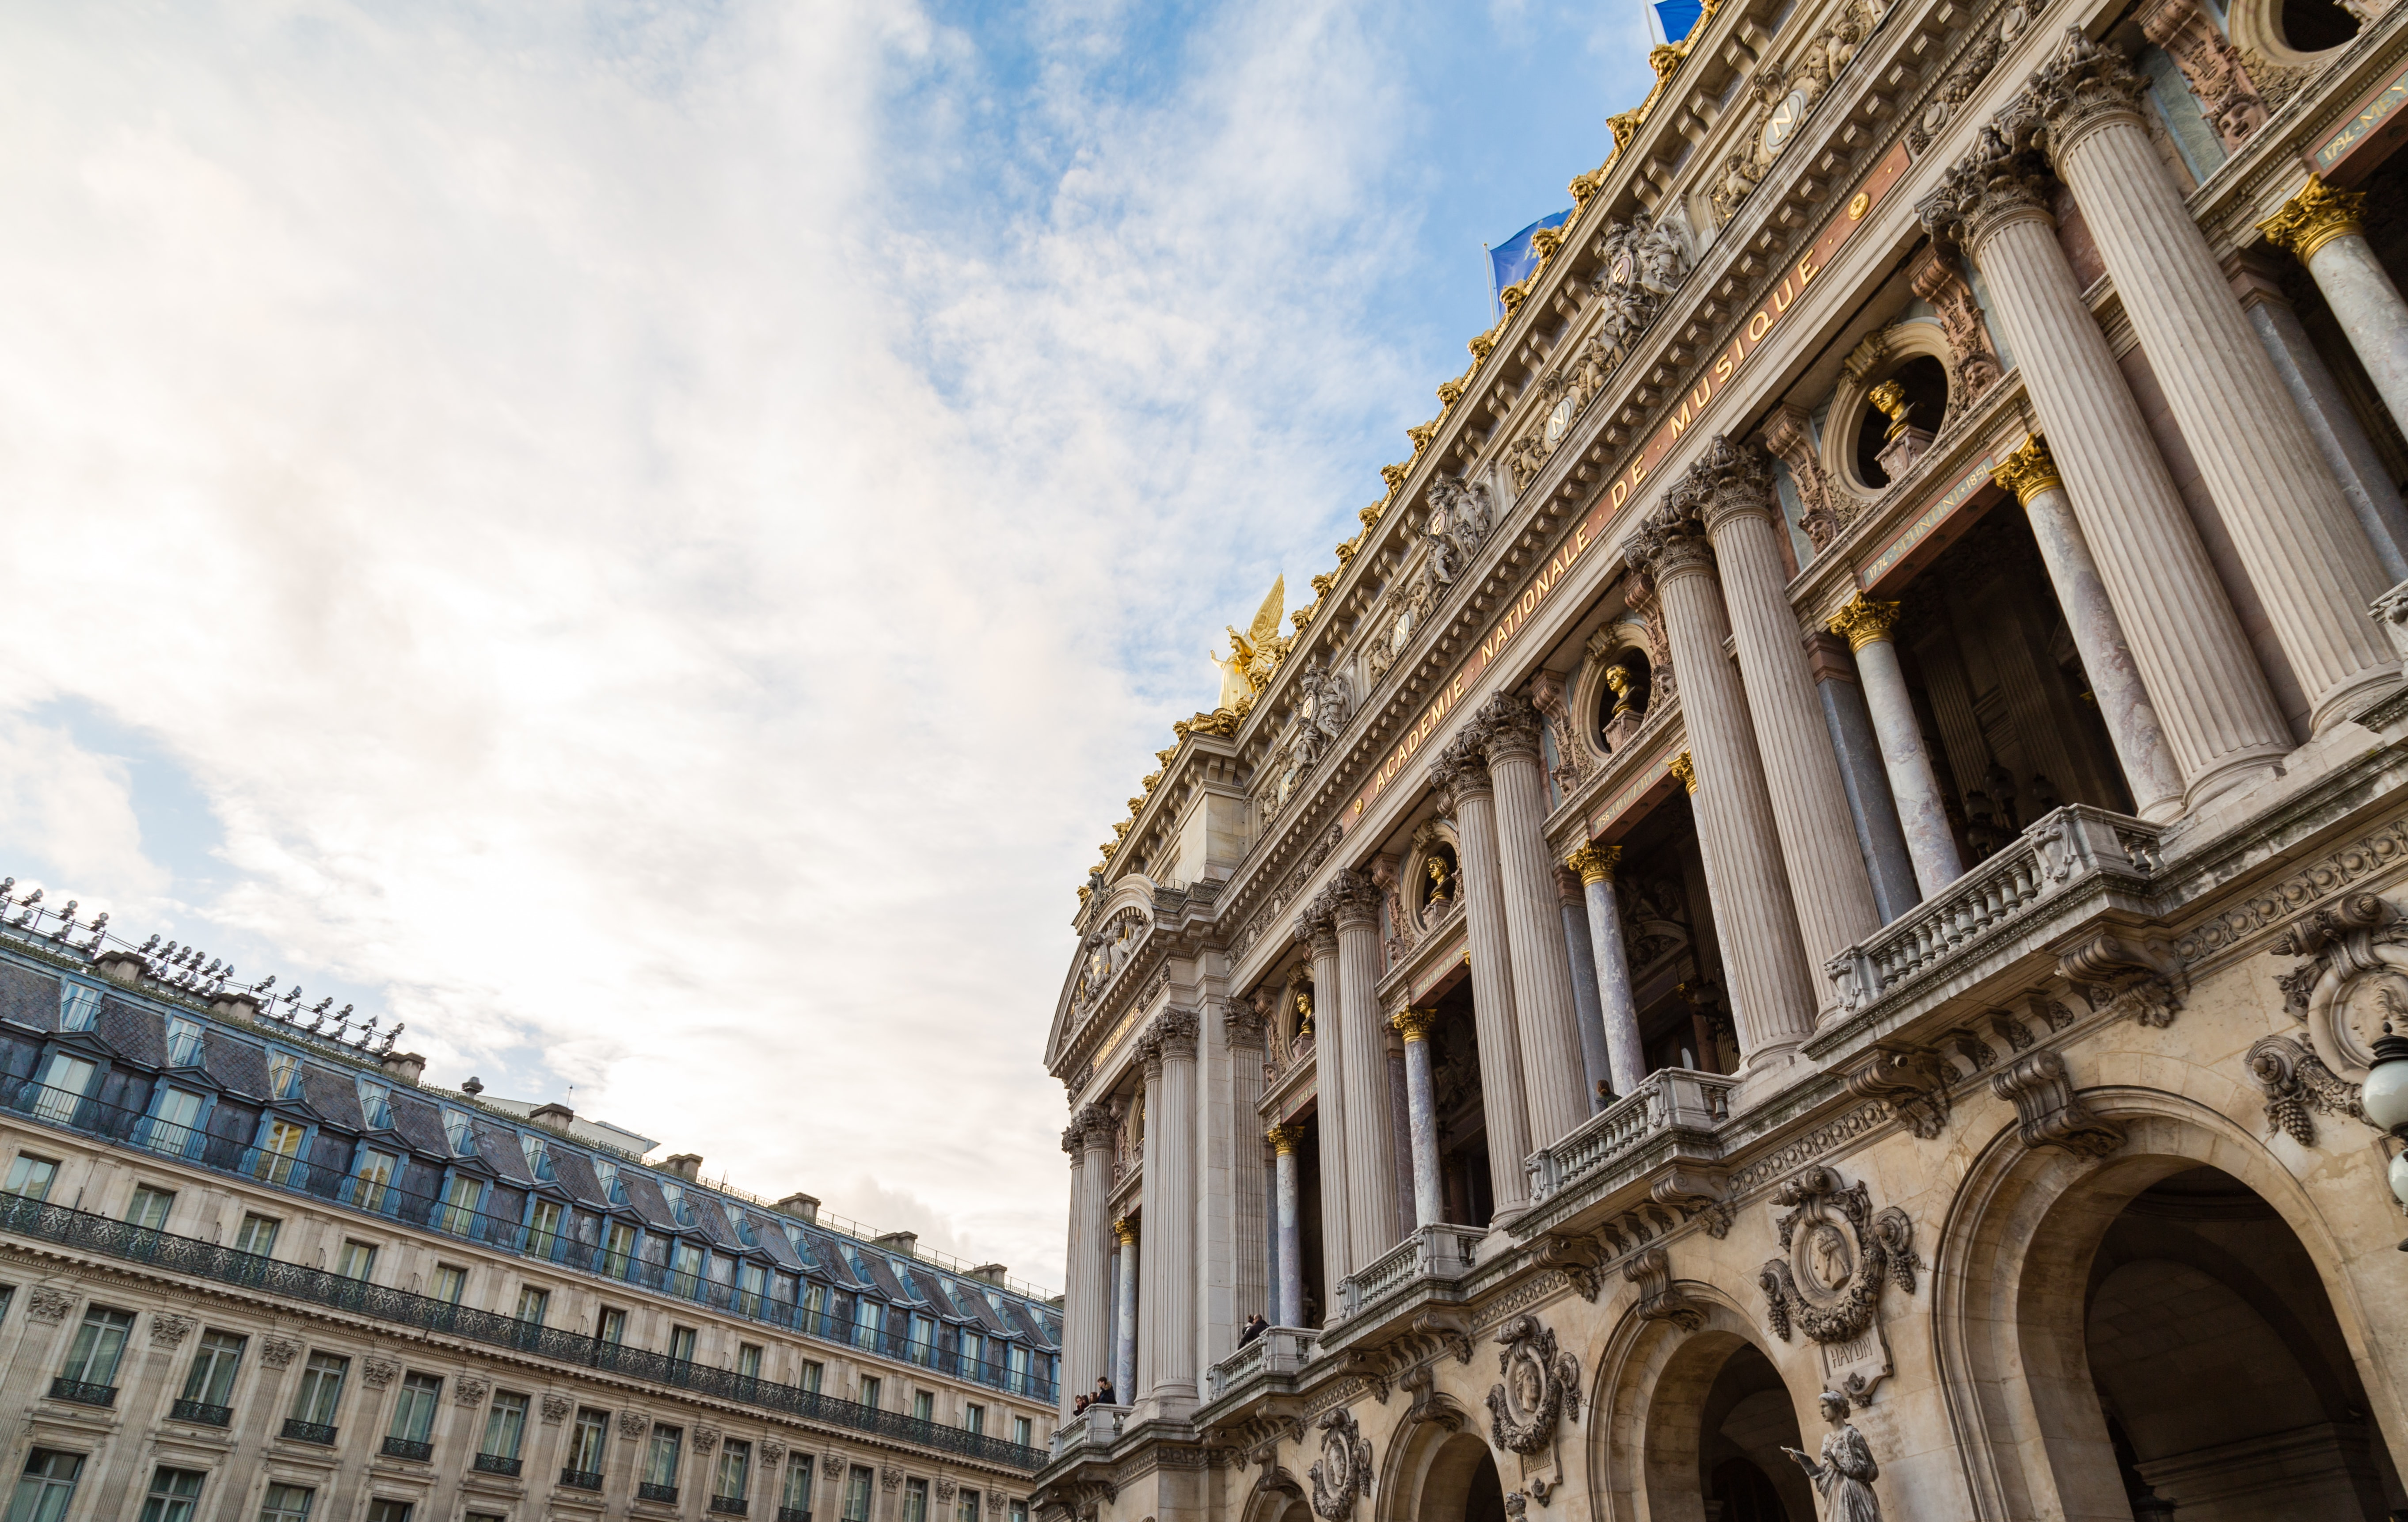 Architectural photo of an old building in Paris, France.